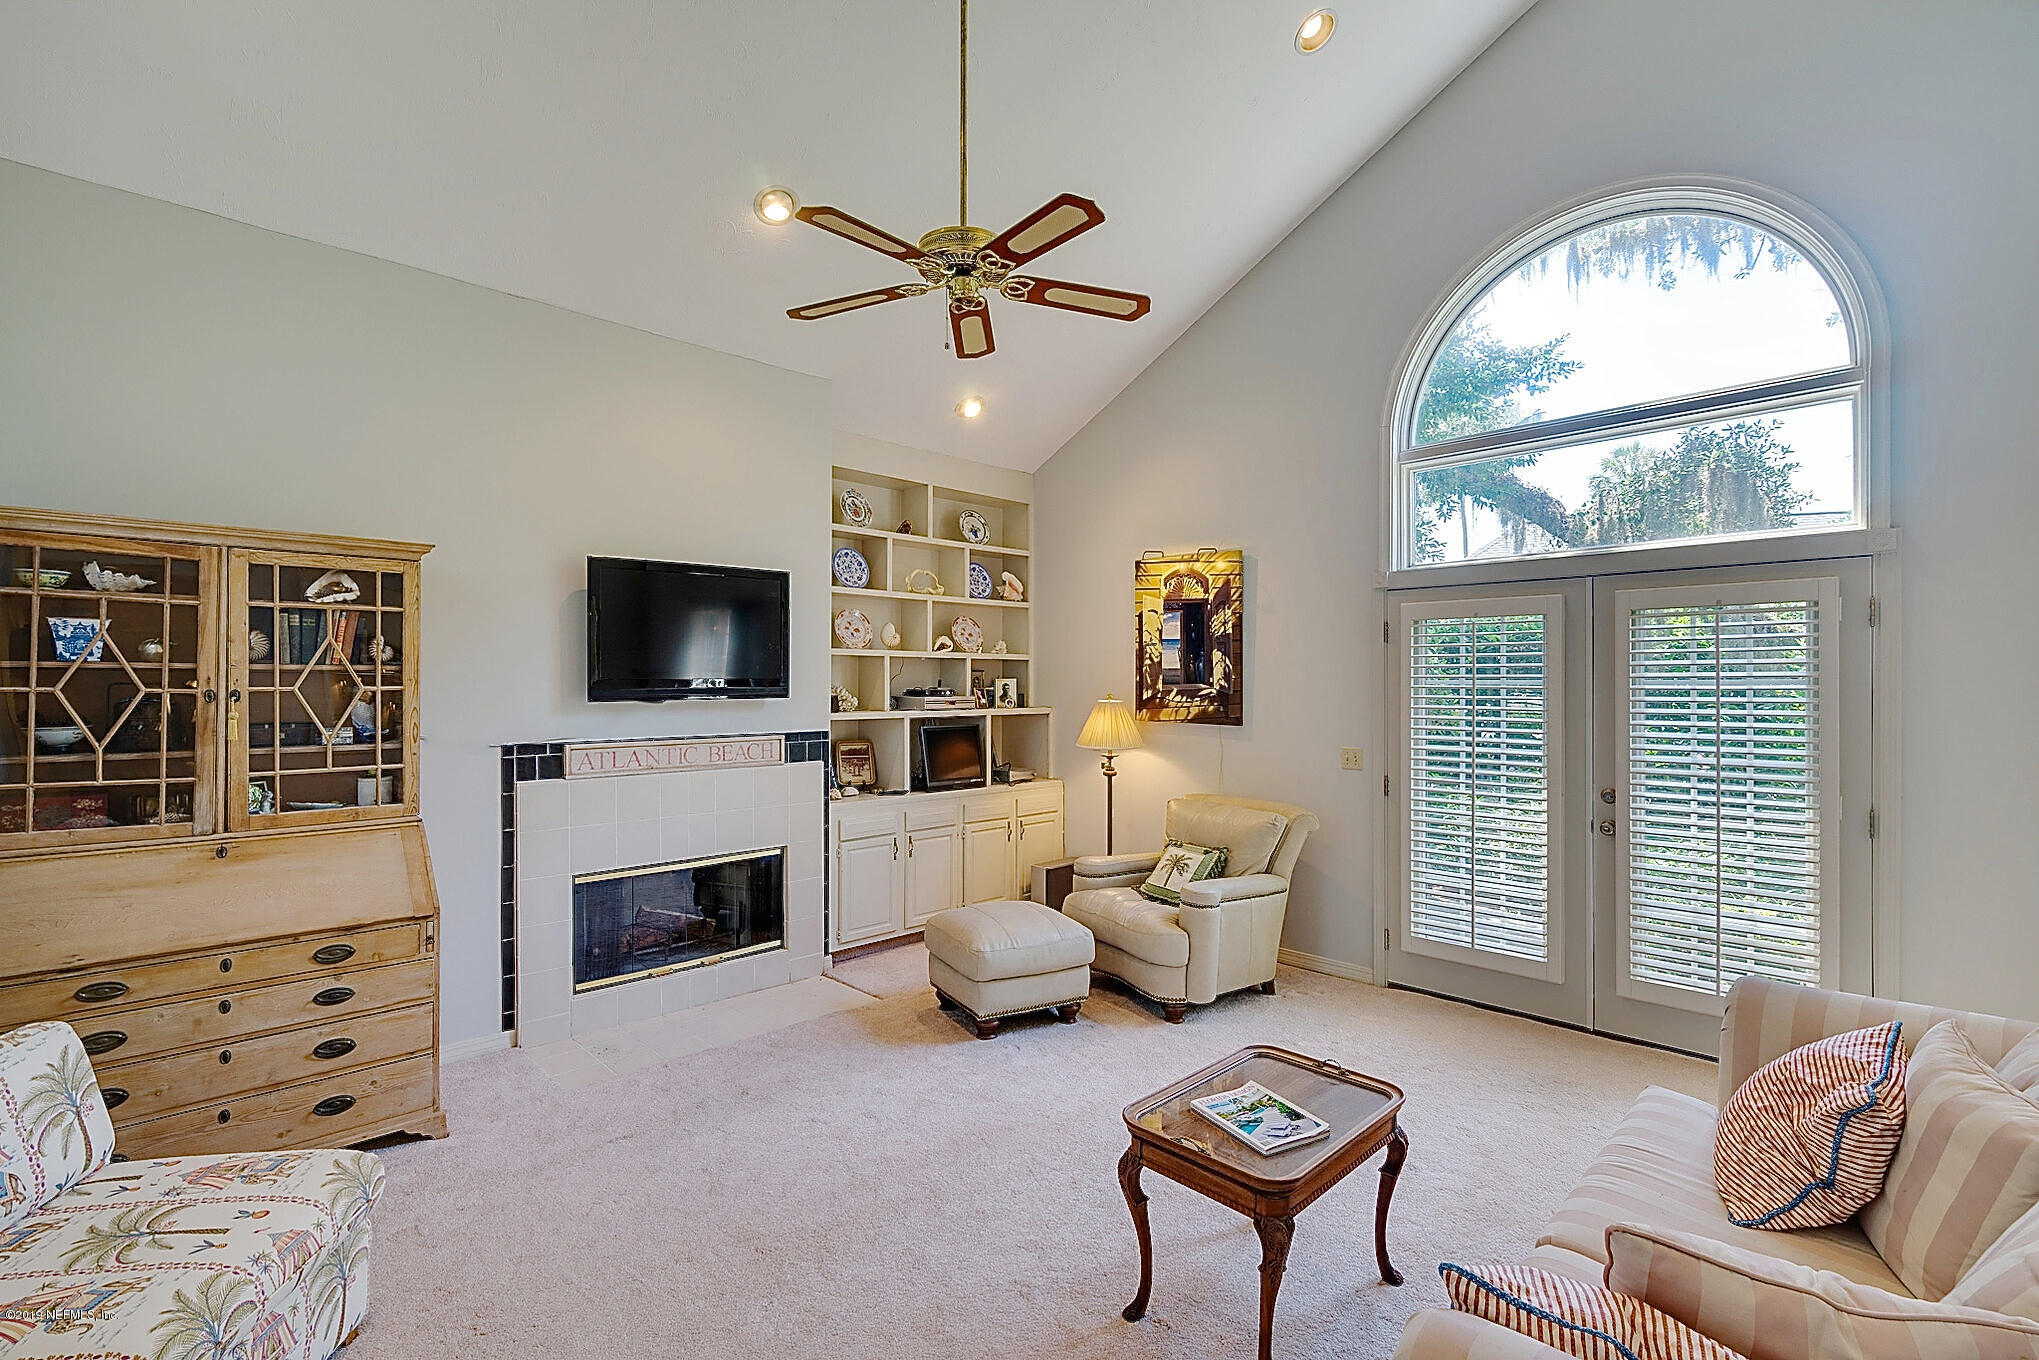 2353 BAREFOOT, ATLANTIC BEACH, FLORIDA 32233, 4 Bedrooms Bedrooms, ,3 BathroomsBathrooms,Residential - single family,For sale,BAREFOOT,972253